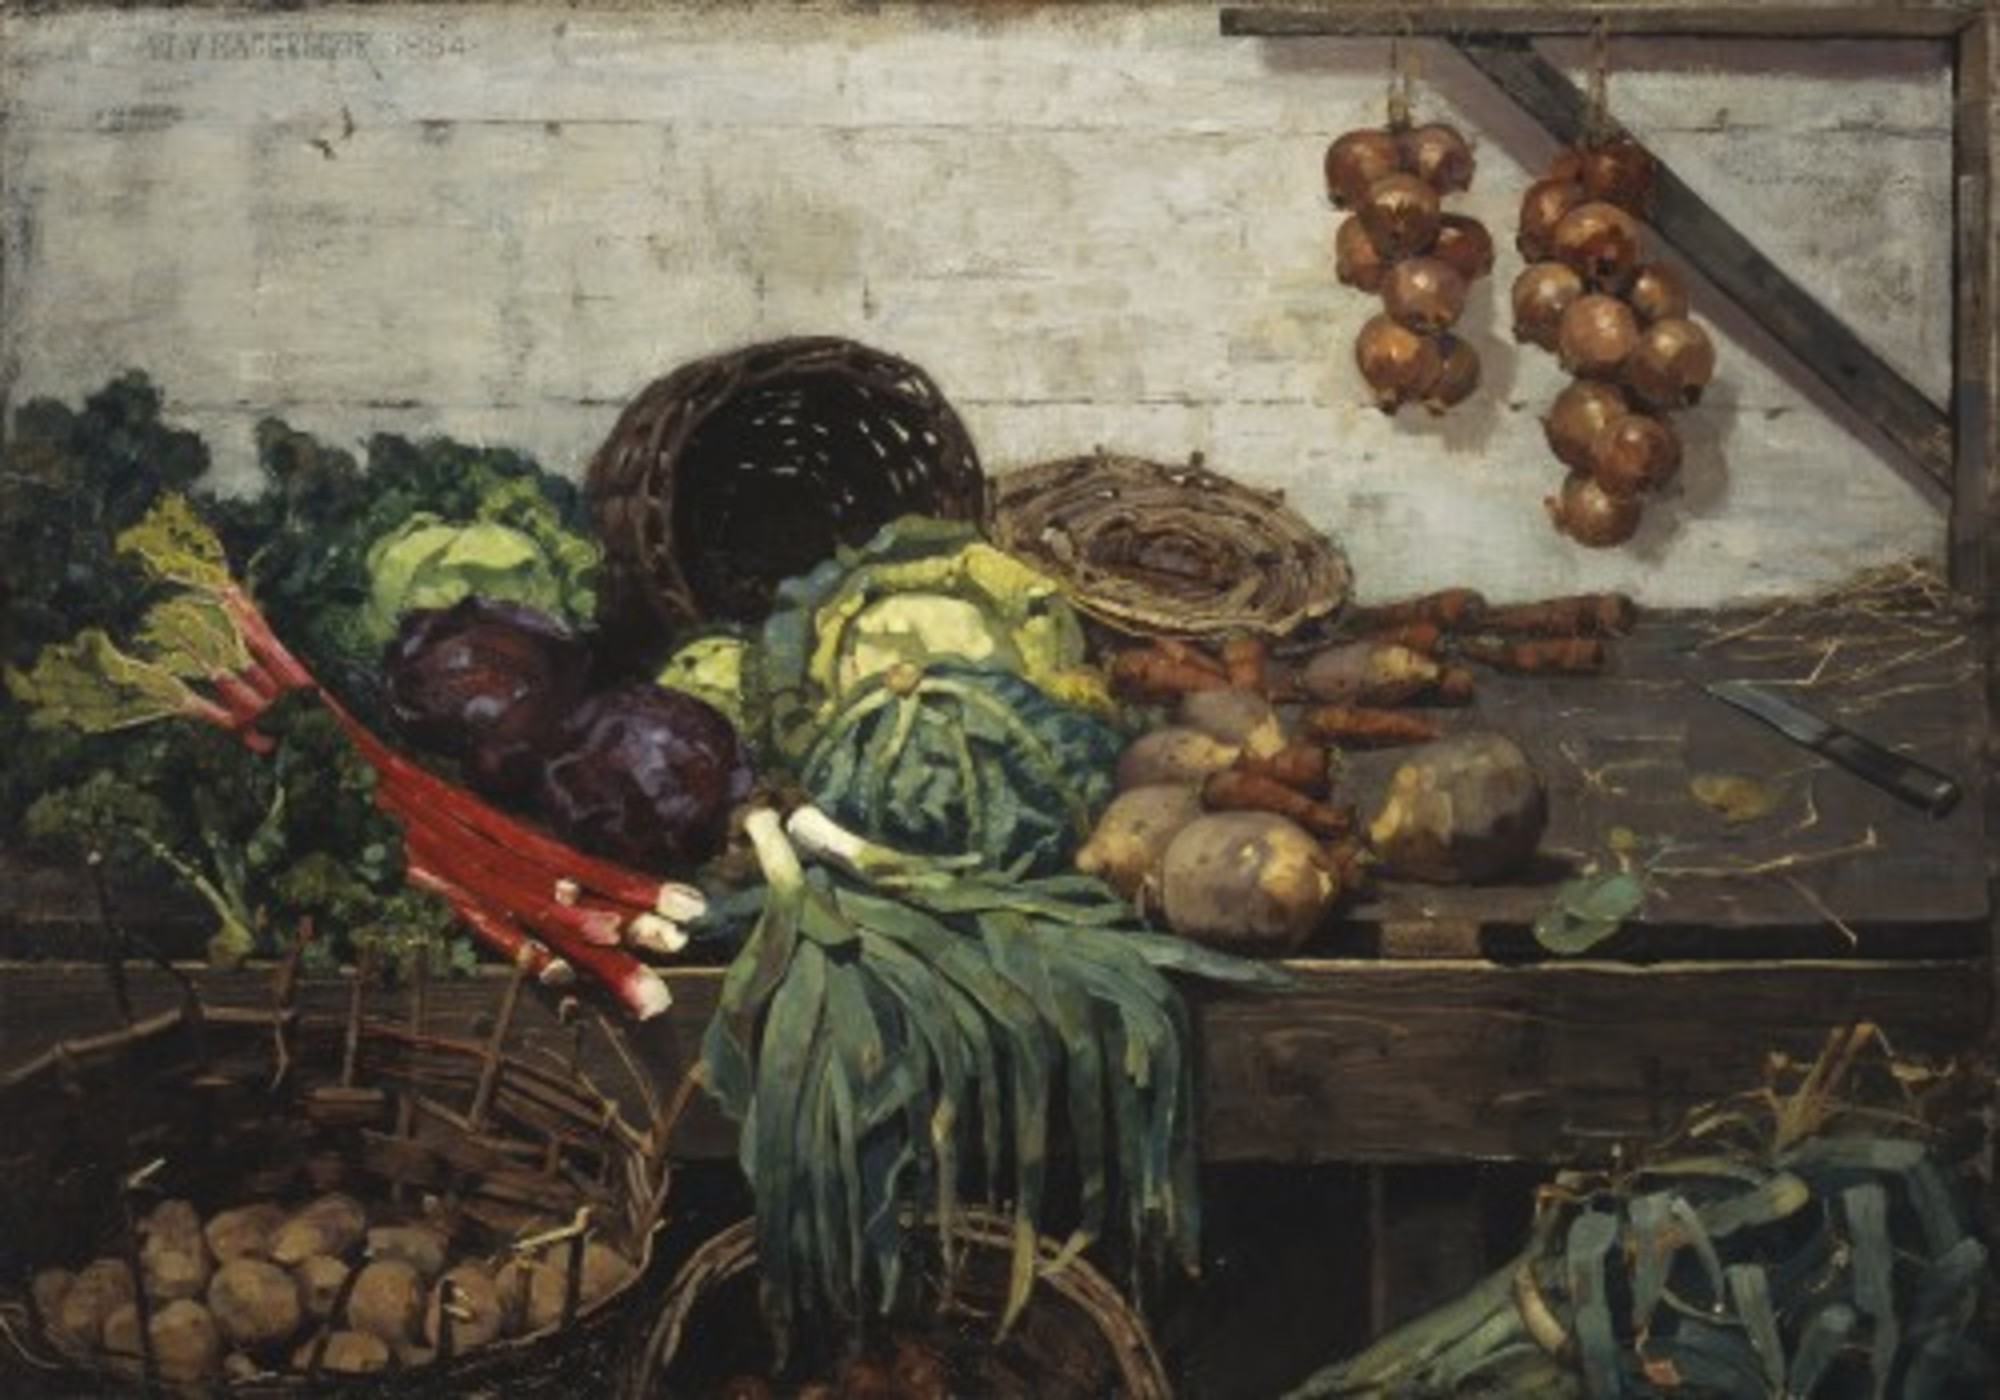 William-York-MacGregor---The-Vegetable-Stall---Google-Art-Project.jpg